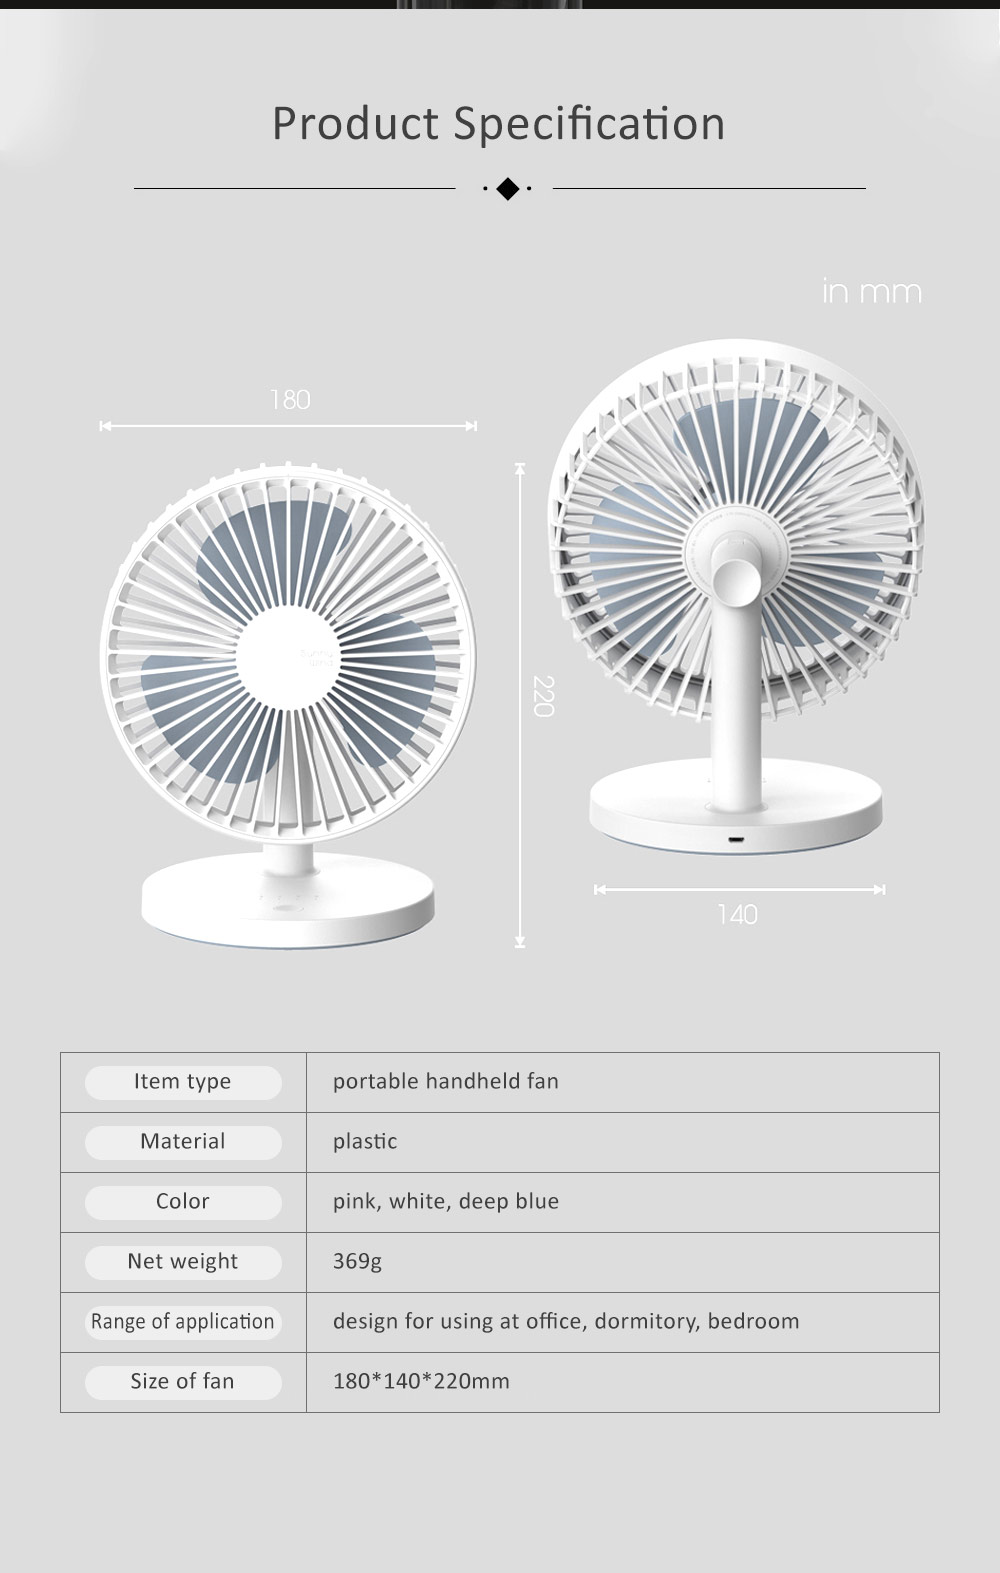 Children Rechargeable Desktop Fan, USB Portable Handheld Mini Noiseless Fan for Office, Dormitory 5